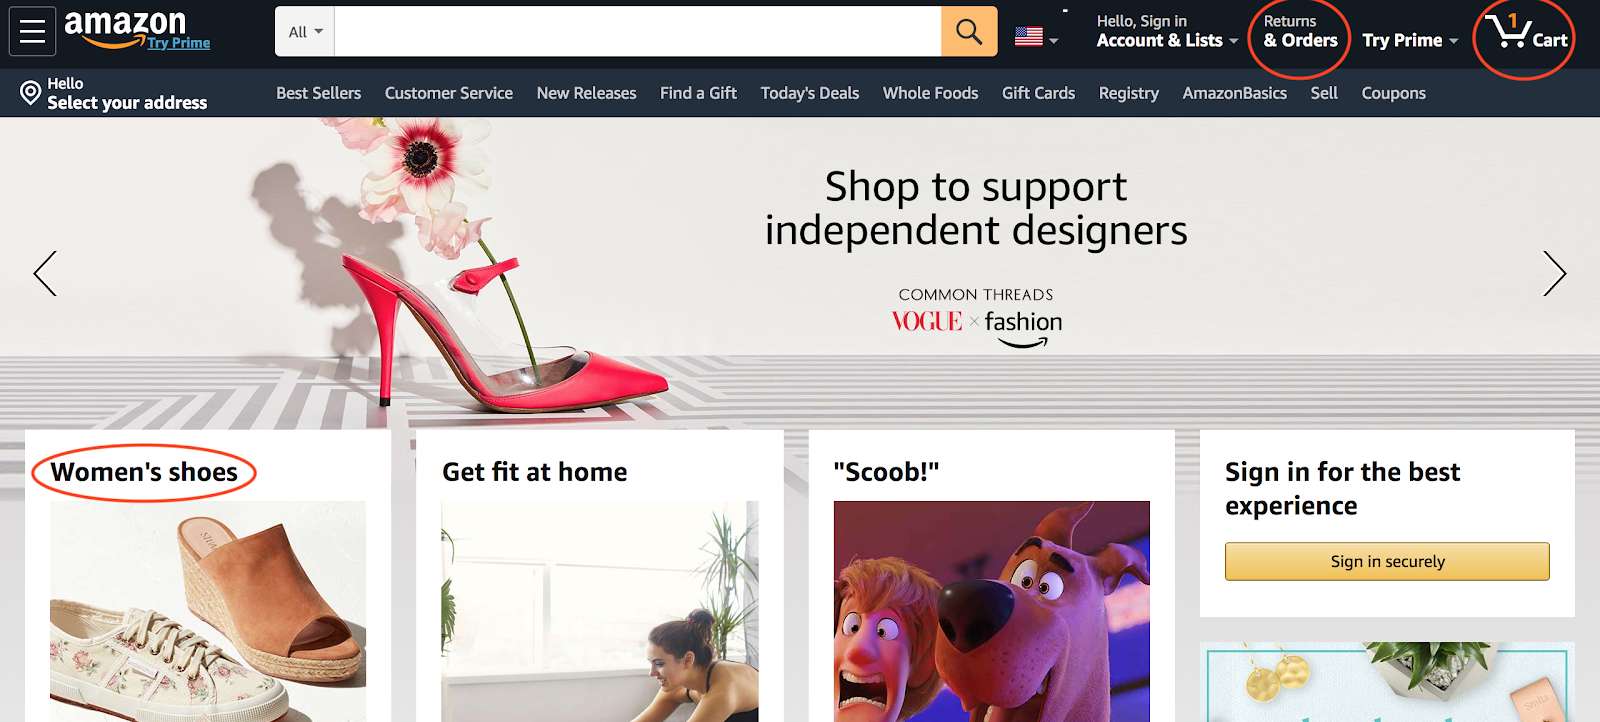 Screenshot of Amazon's homepage that shows the effective and clear design of their online store.